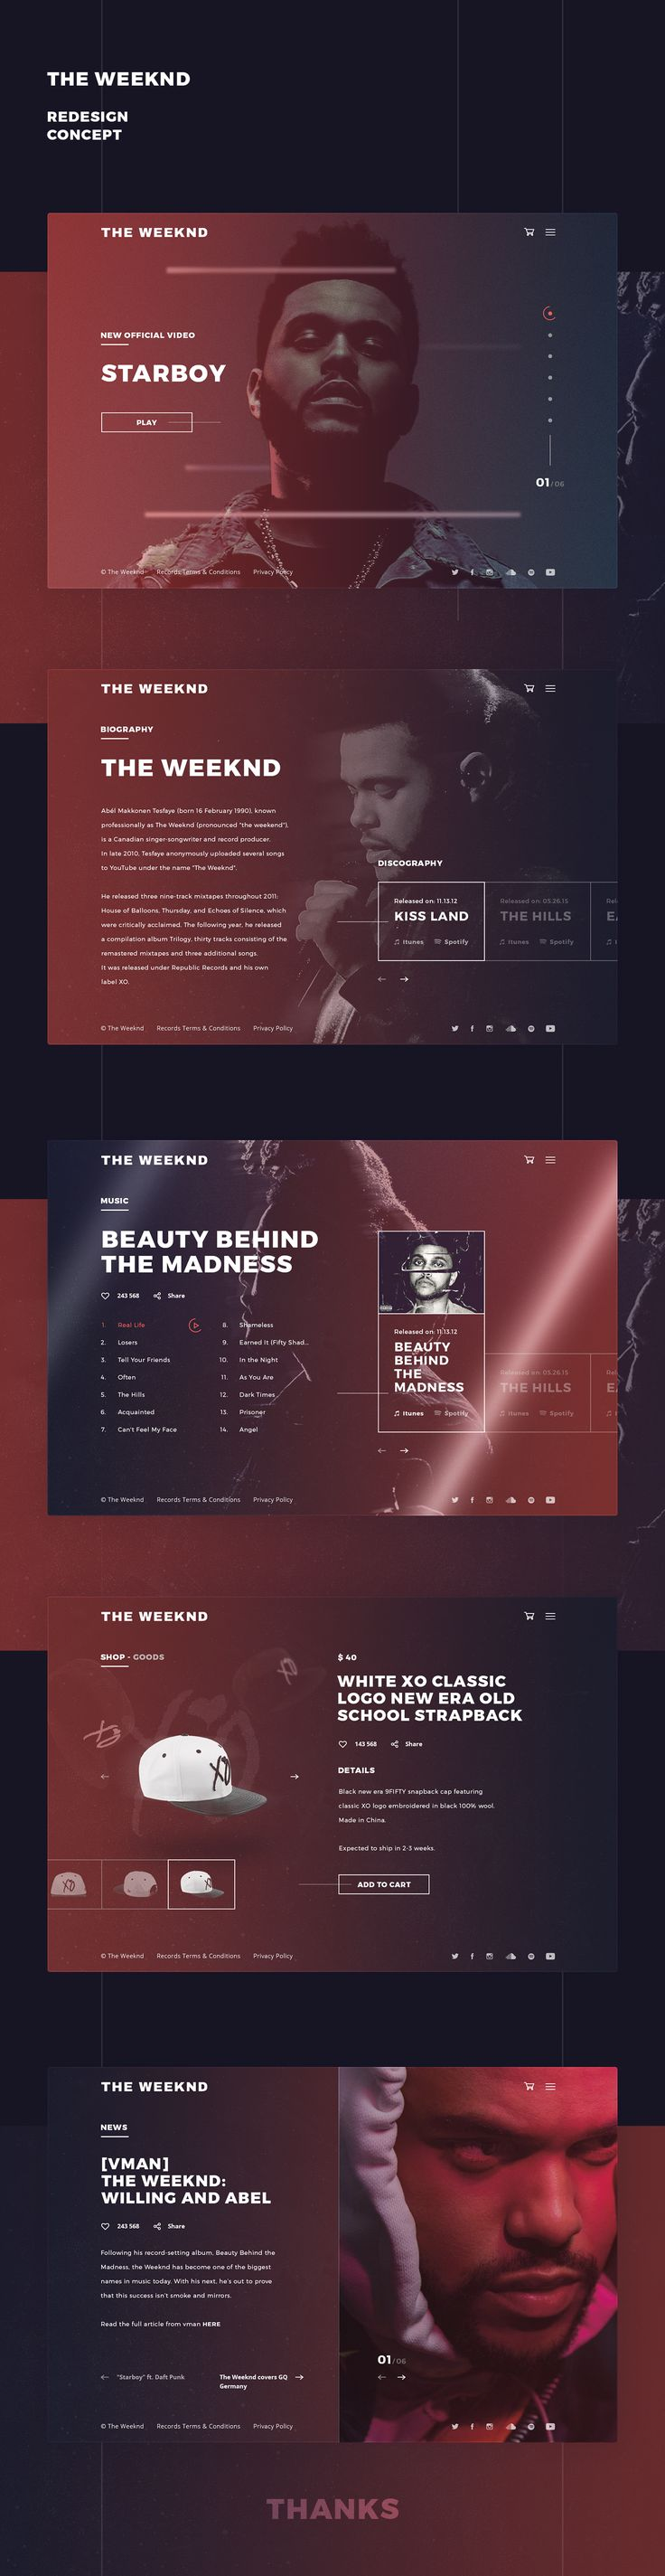 "查看此 @Behance 项目:""The Weeknd Redesign Concept""https://www.behance.net/gallery/43963487/The-Weeknd-Redesign-Concept"